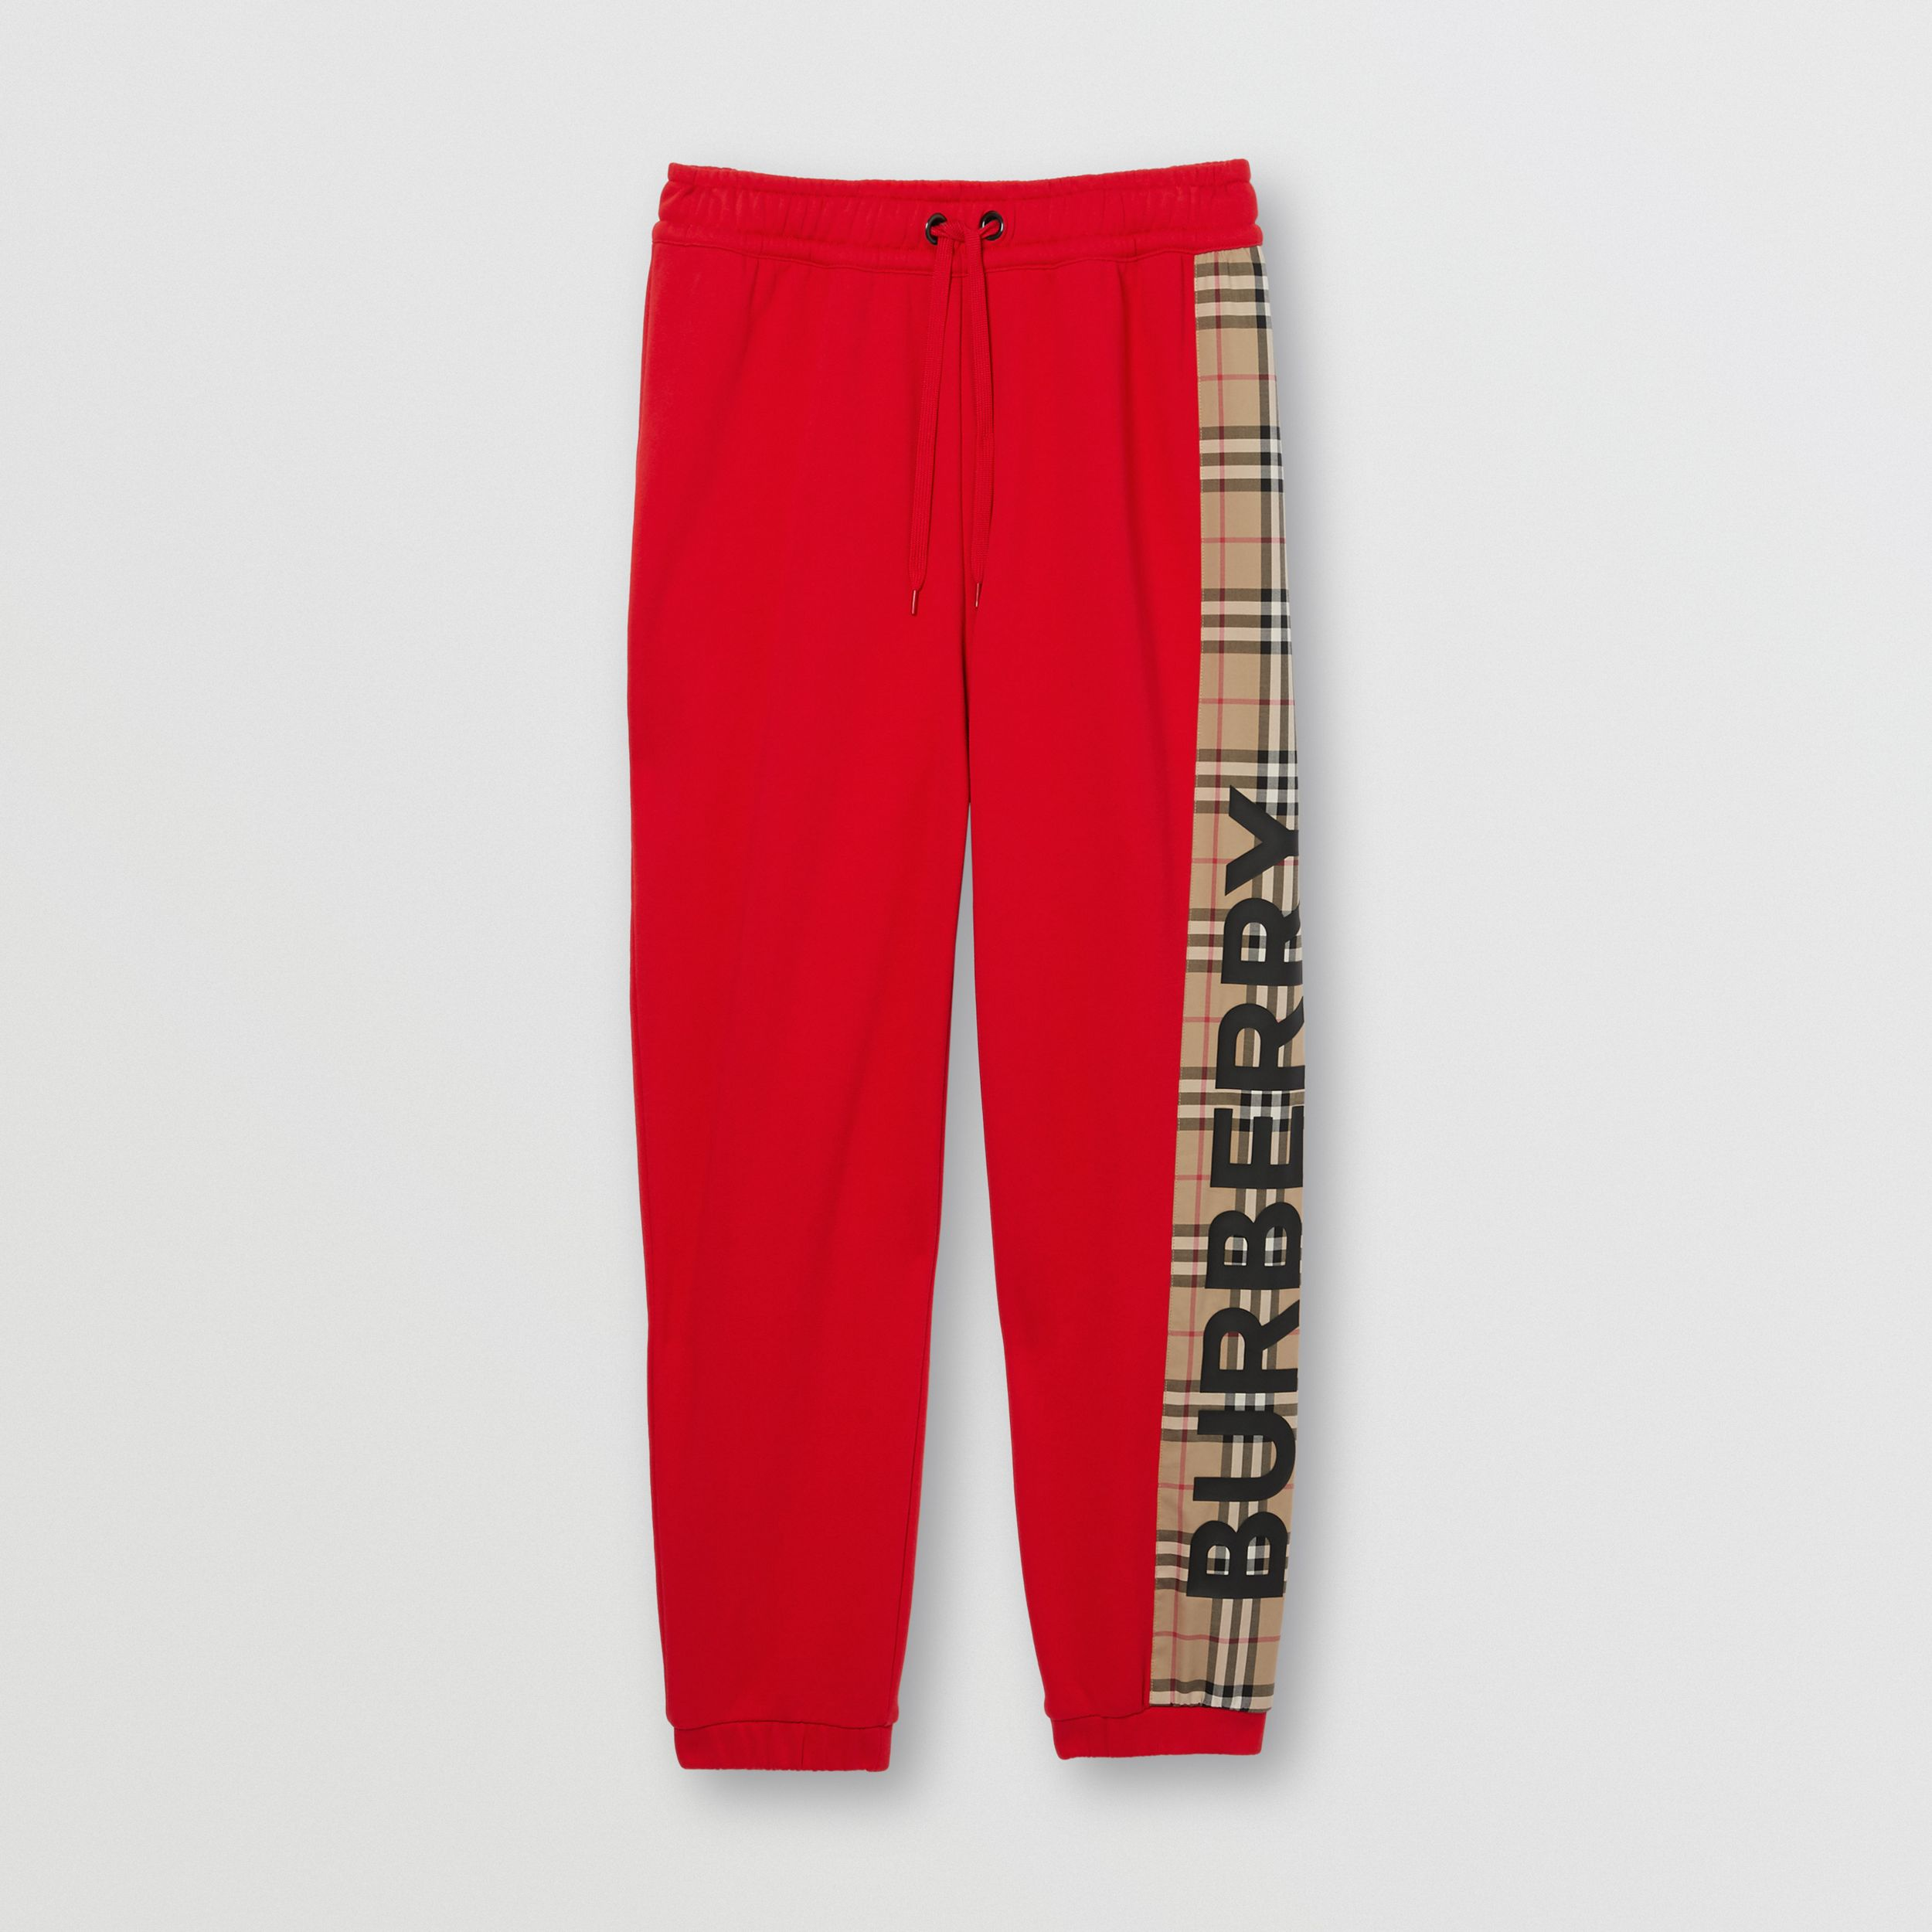 Vintage Check Panel Cotton Jogging Pants in Bright Red - Women | Burberry - 4